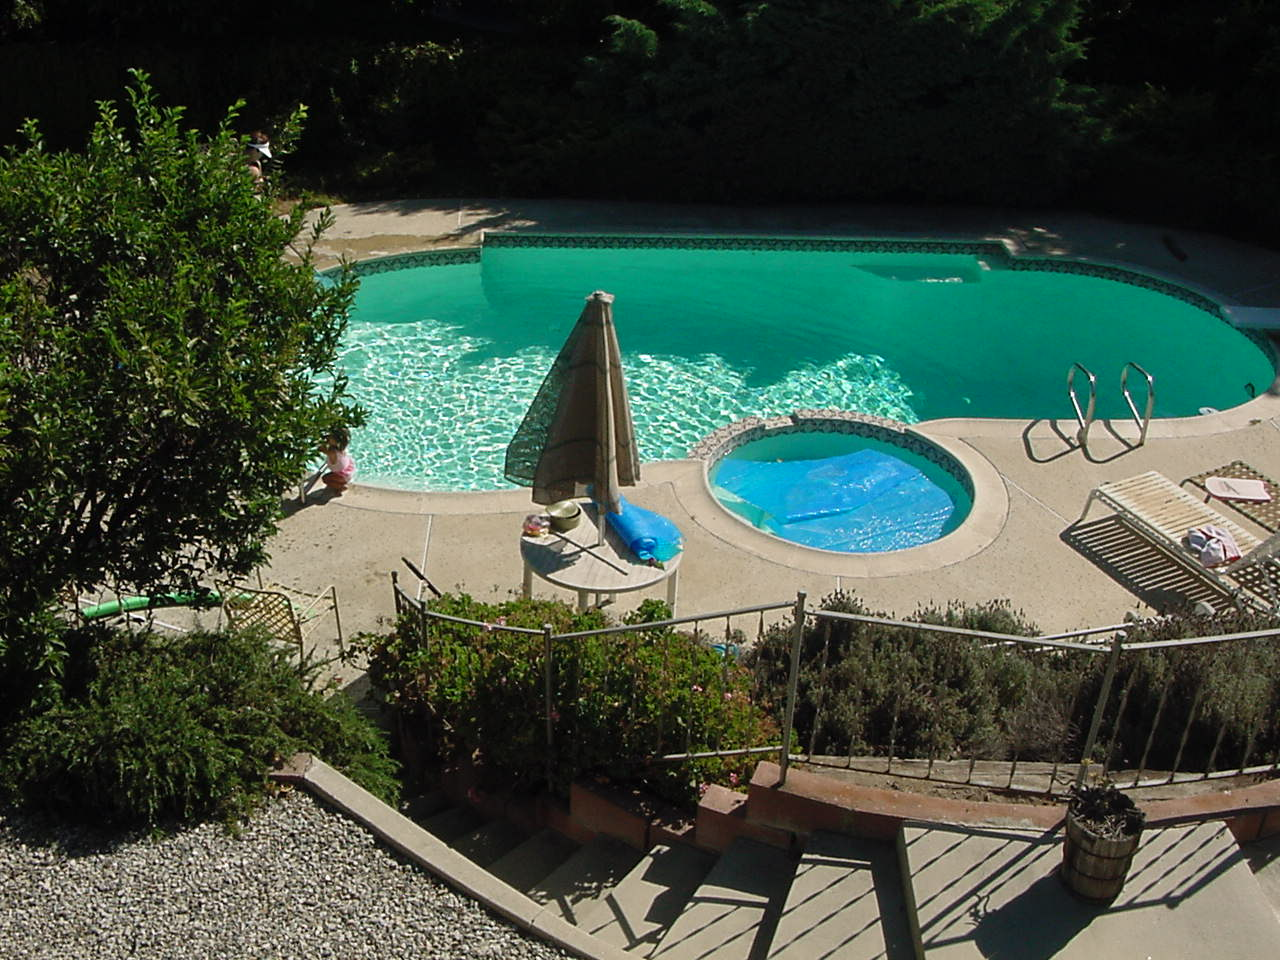 Walter and Susie's backyard and pool